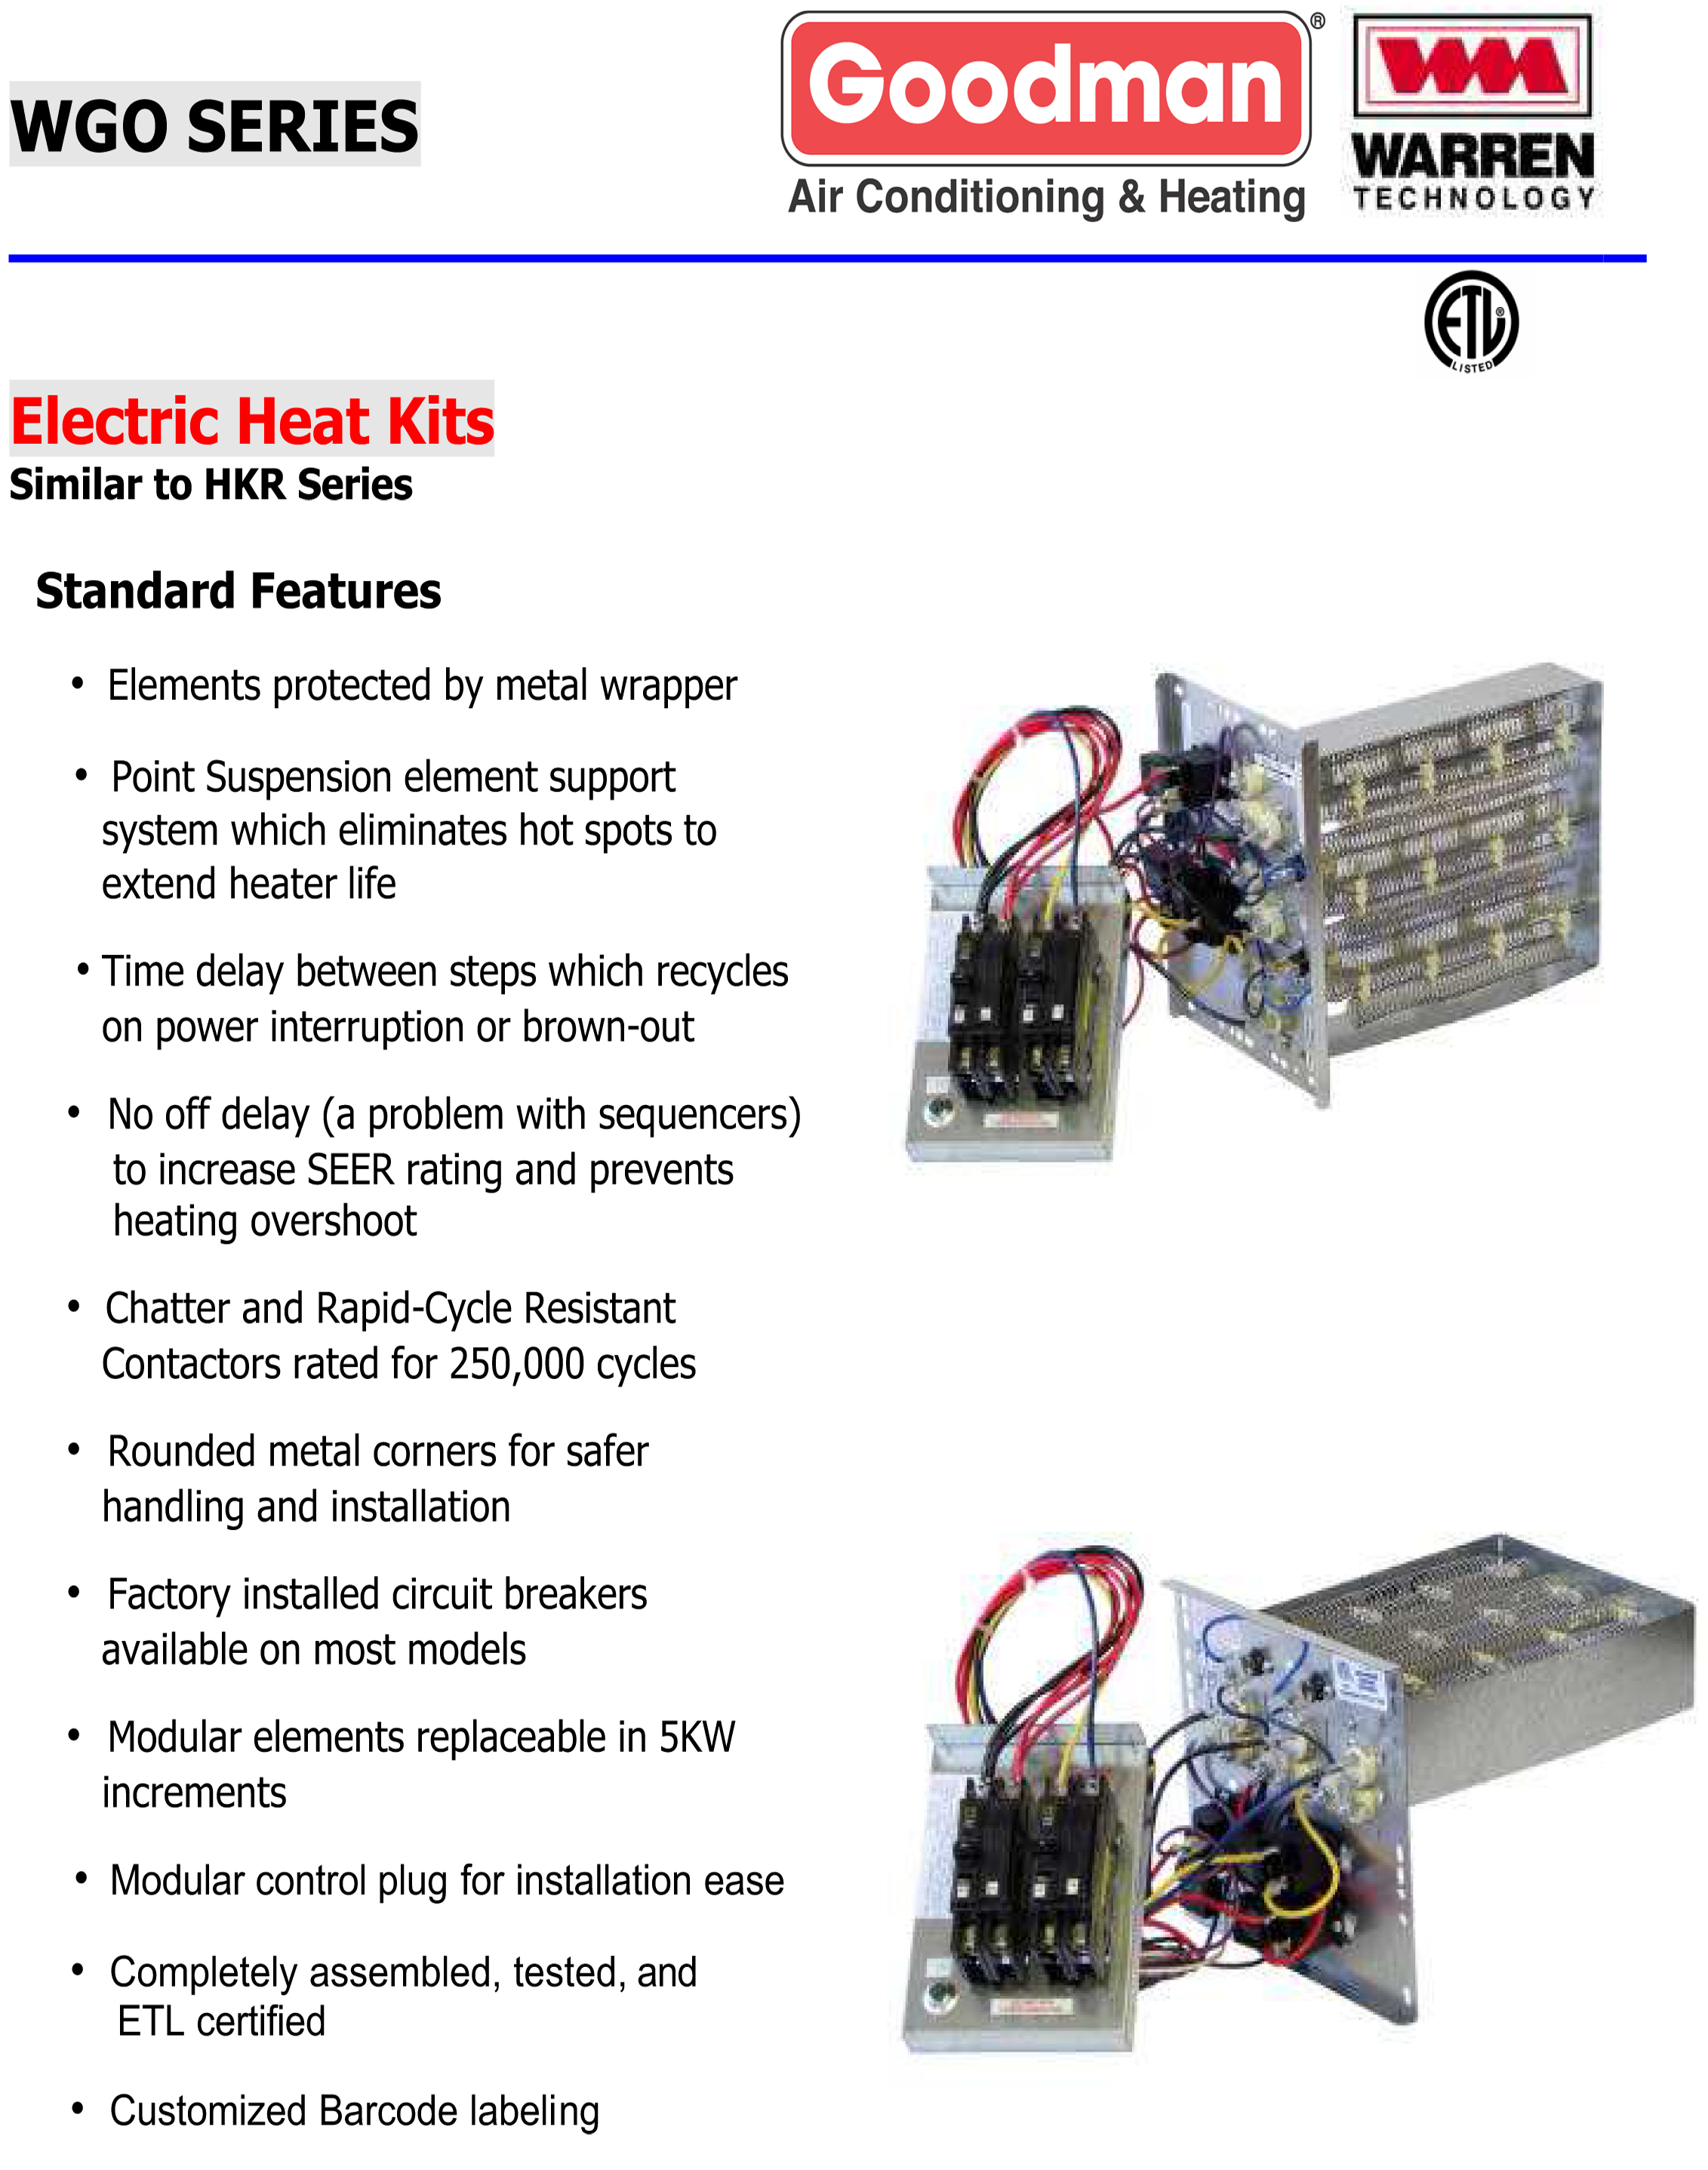 bard heat pump wiring diagram cement process flow 5 kw strip for goodman units gph gpc ar aer adp